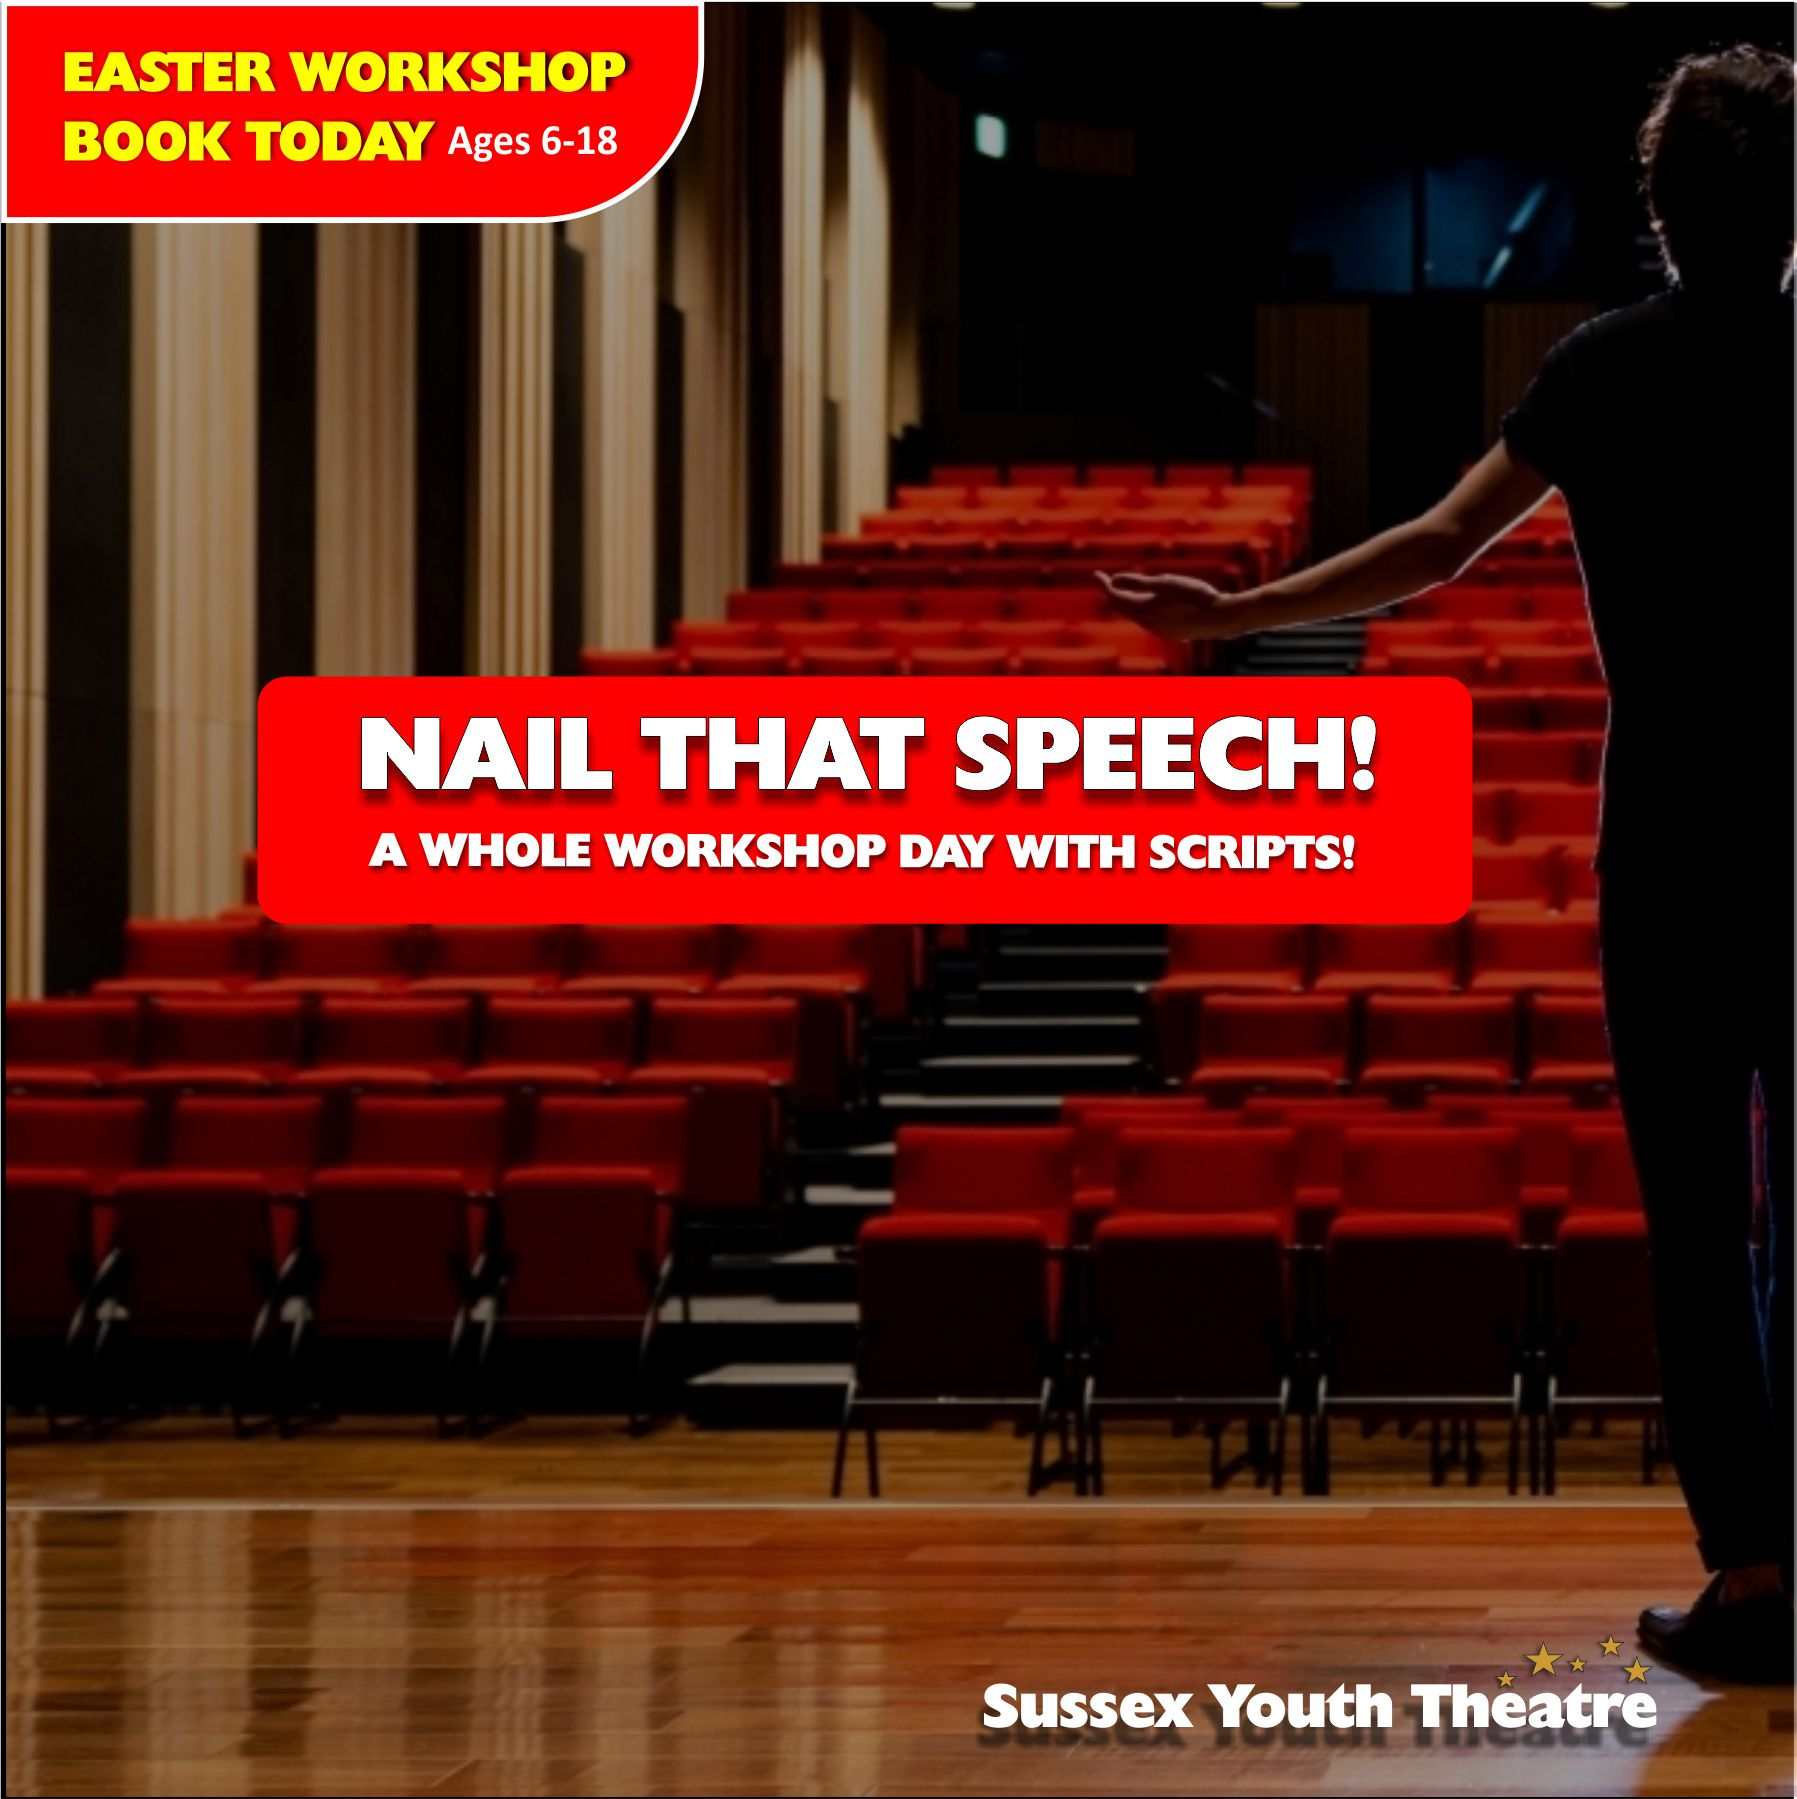 Nail that Speech - BMOI image